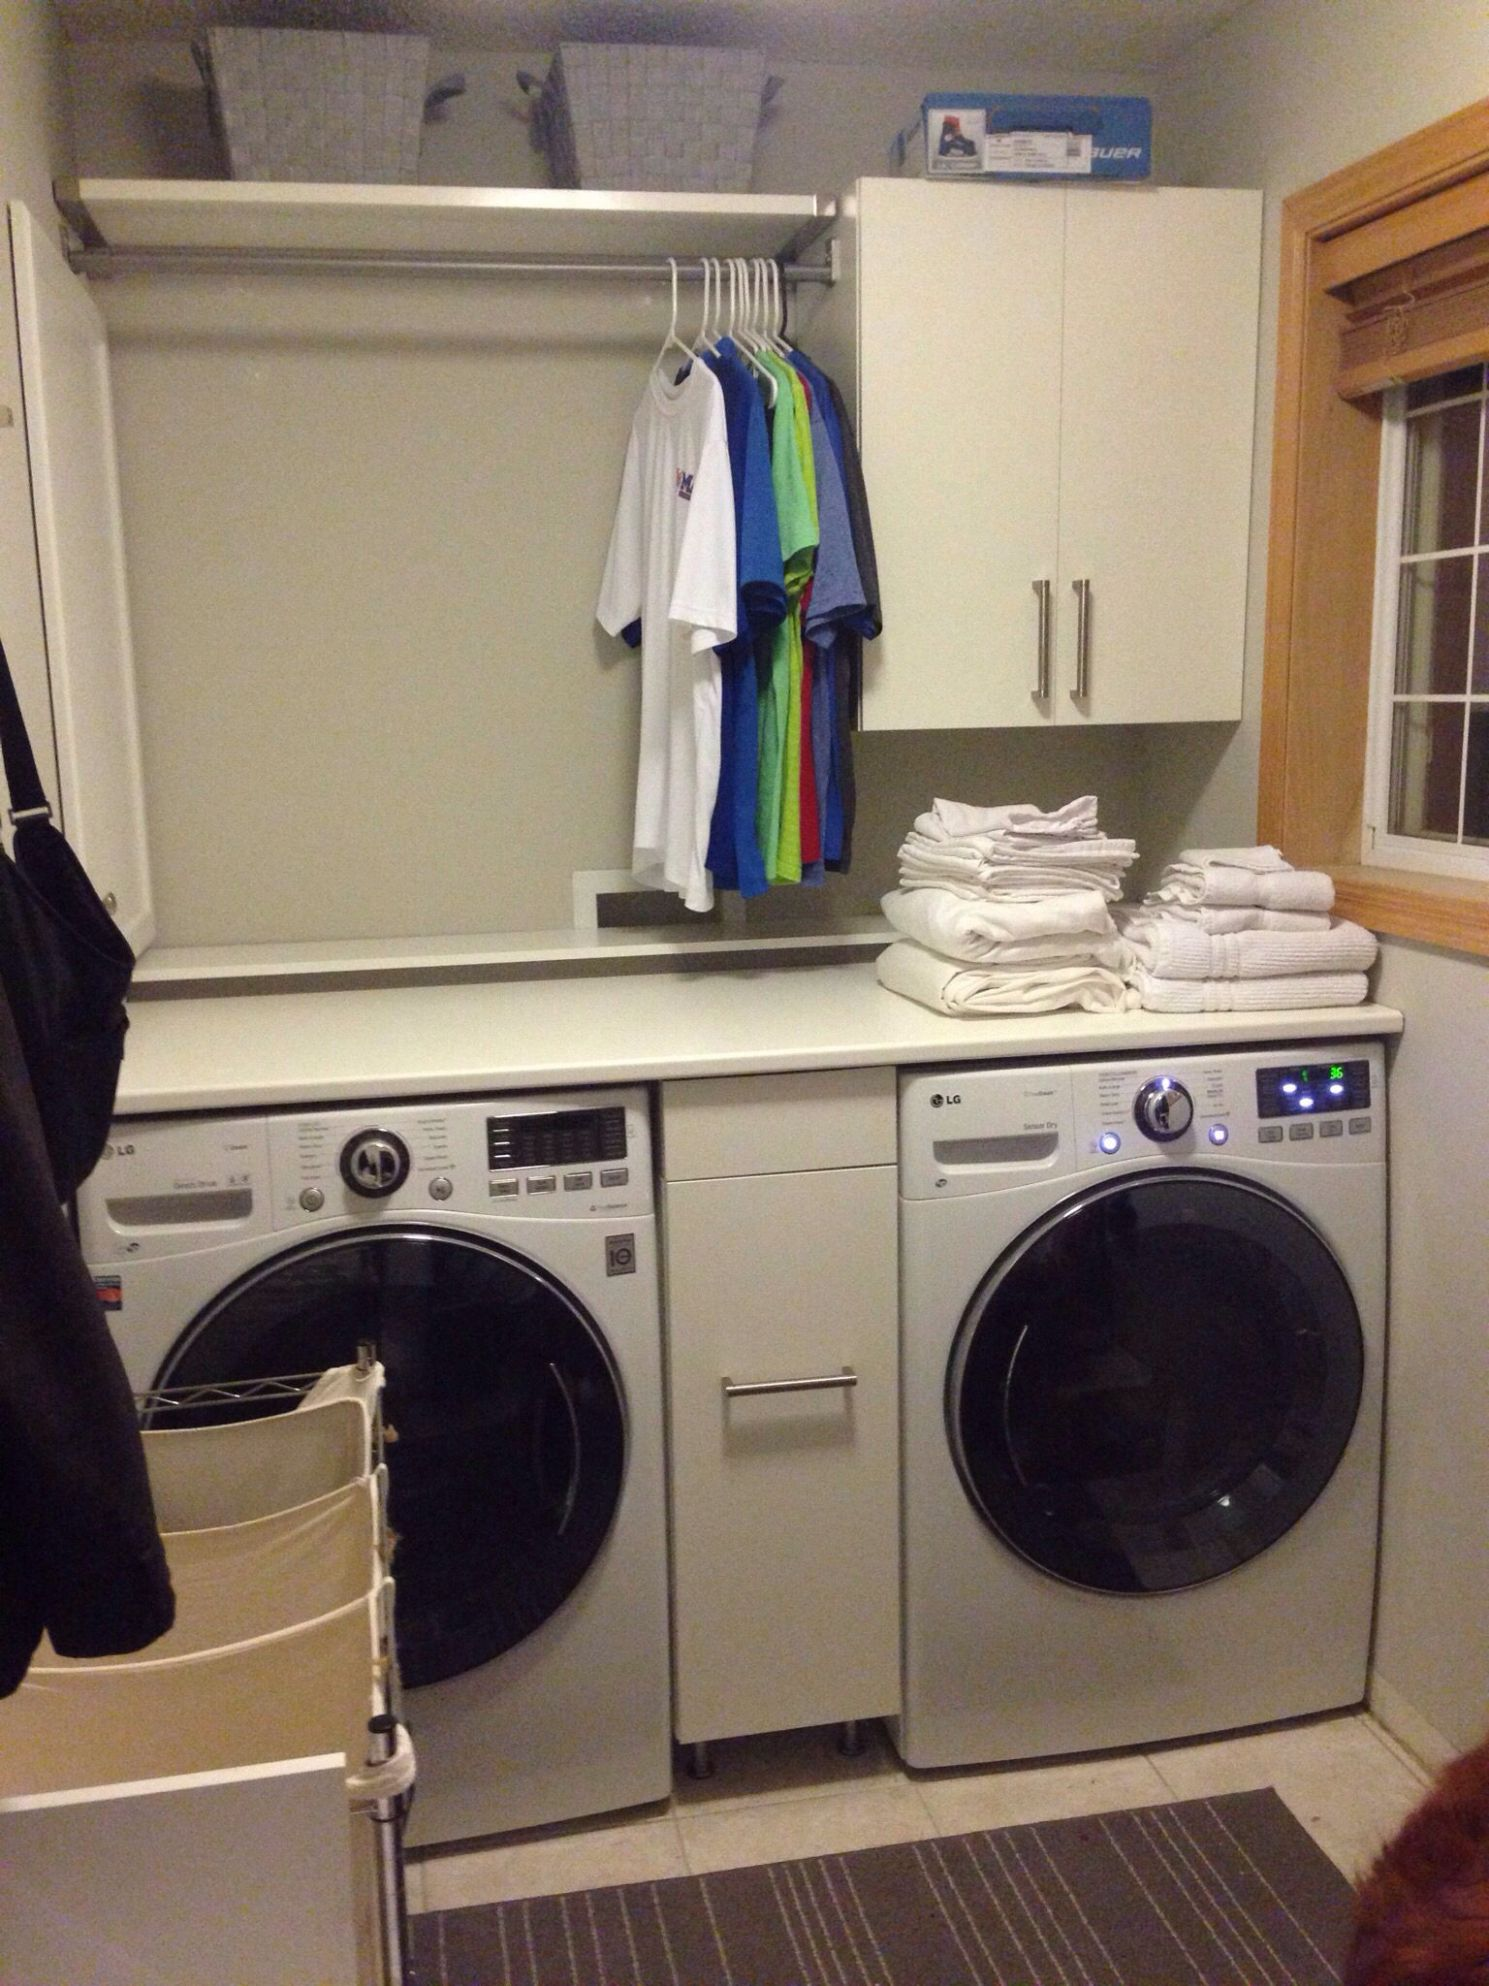 Laundry Room IKEA Hack | Laundry room countertop, Laundry room ..